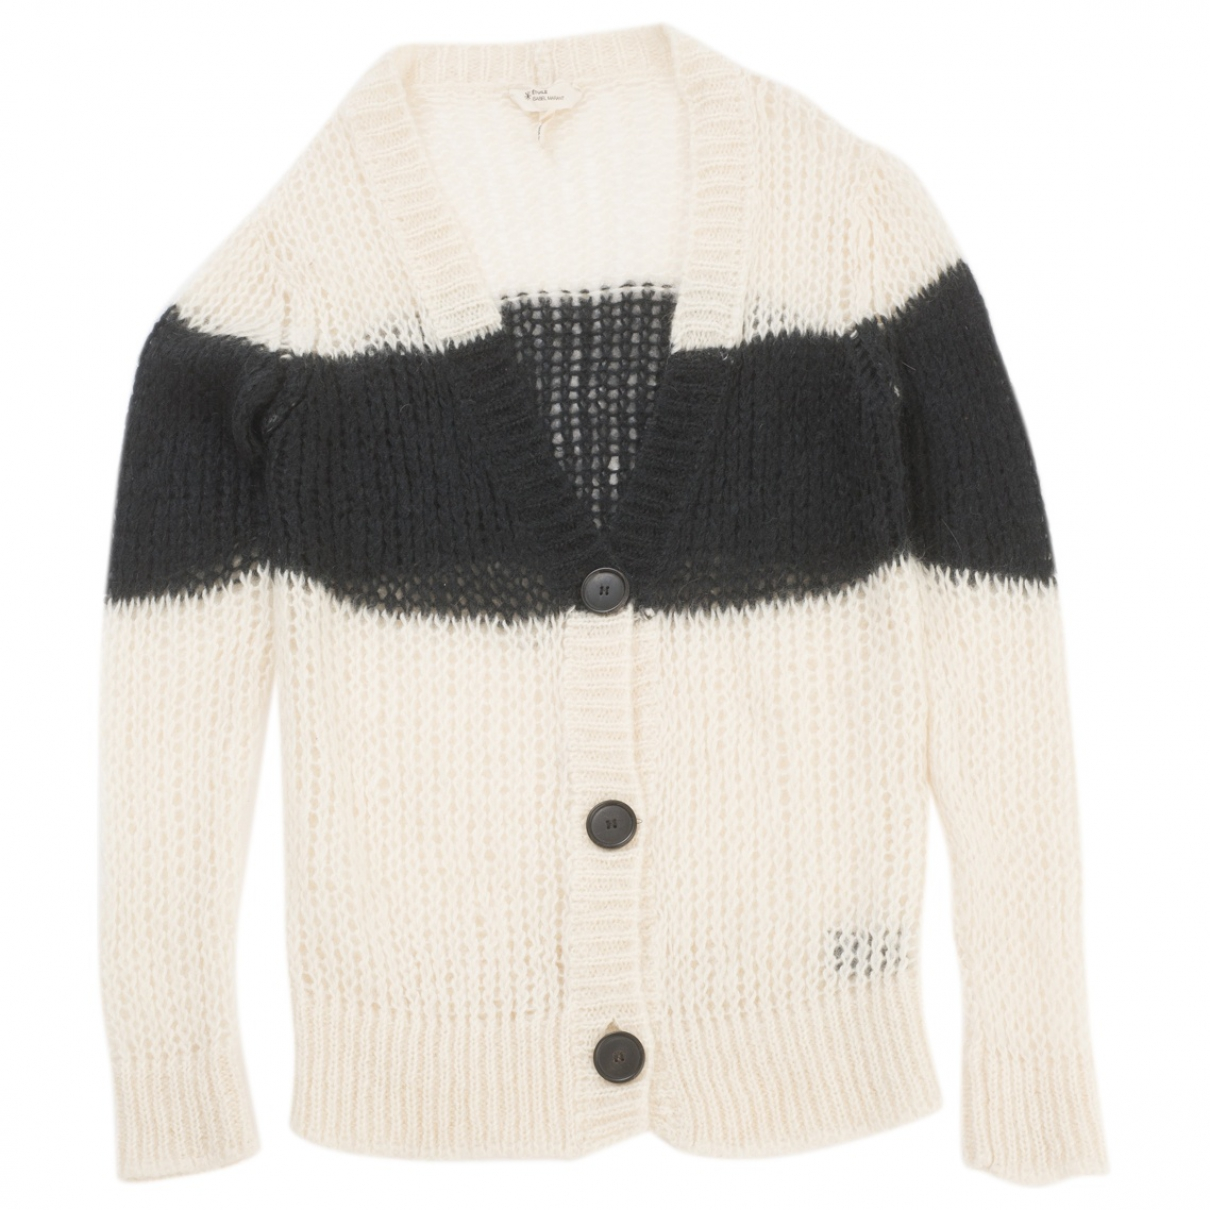 Isabel Marant Etoile \N Ecru Wool Knitwear for Women 1